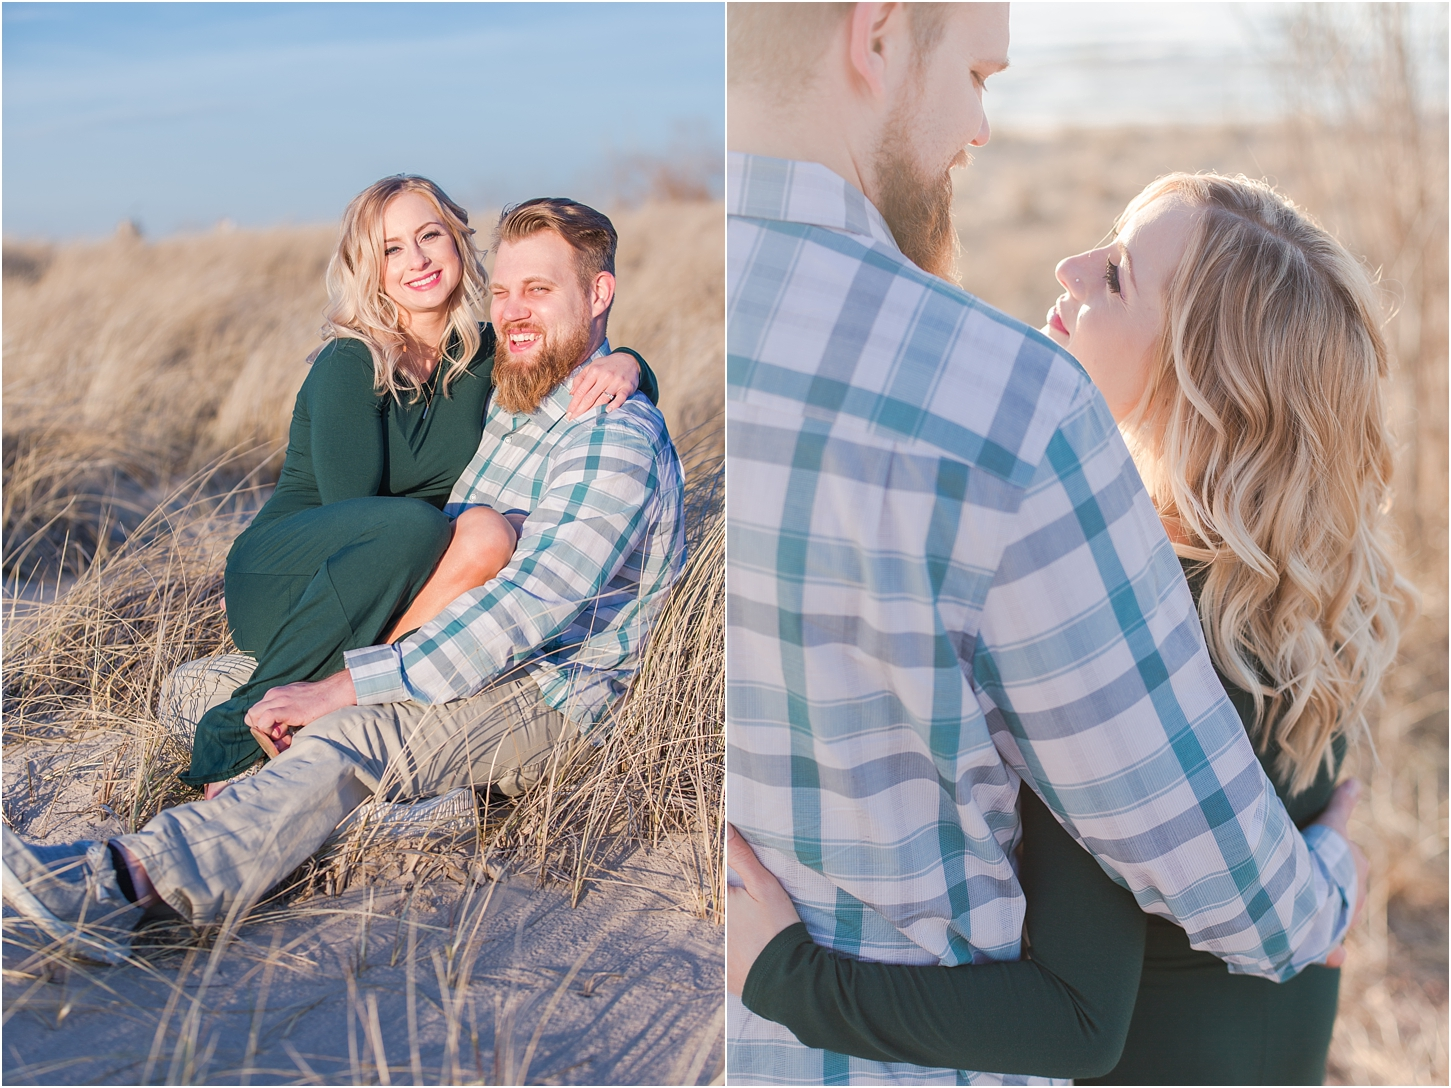 romantic-sunset-beach-engagement-photos-at-silver-beach-in-saint-joseph-mi-by-courtney-carolyn-photography_0023.jpg